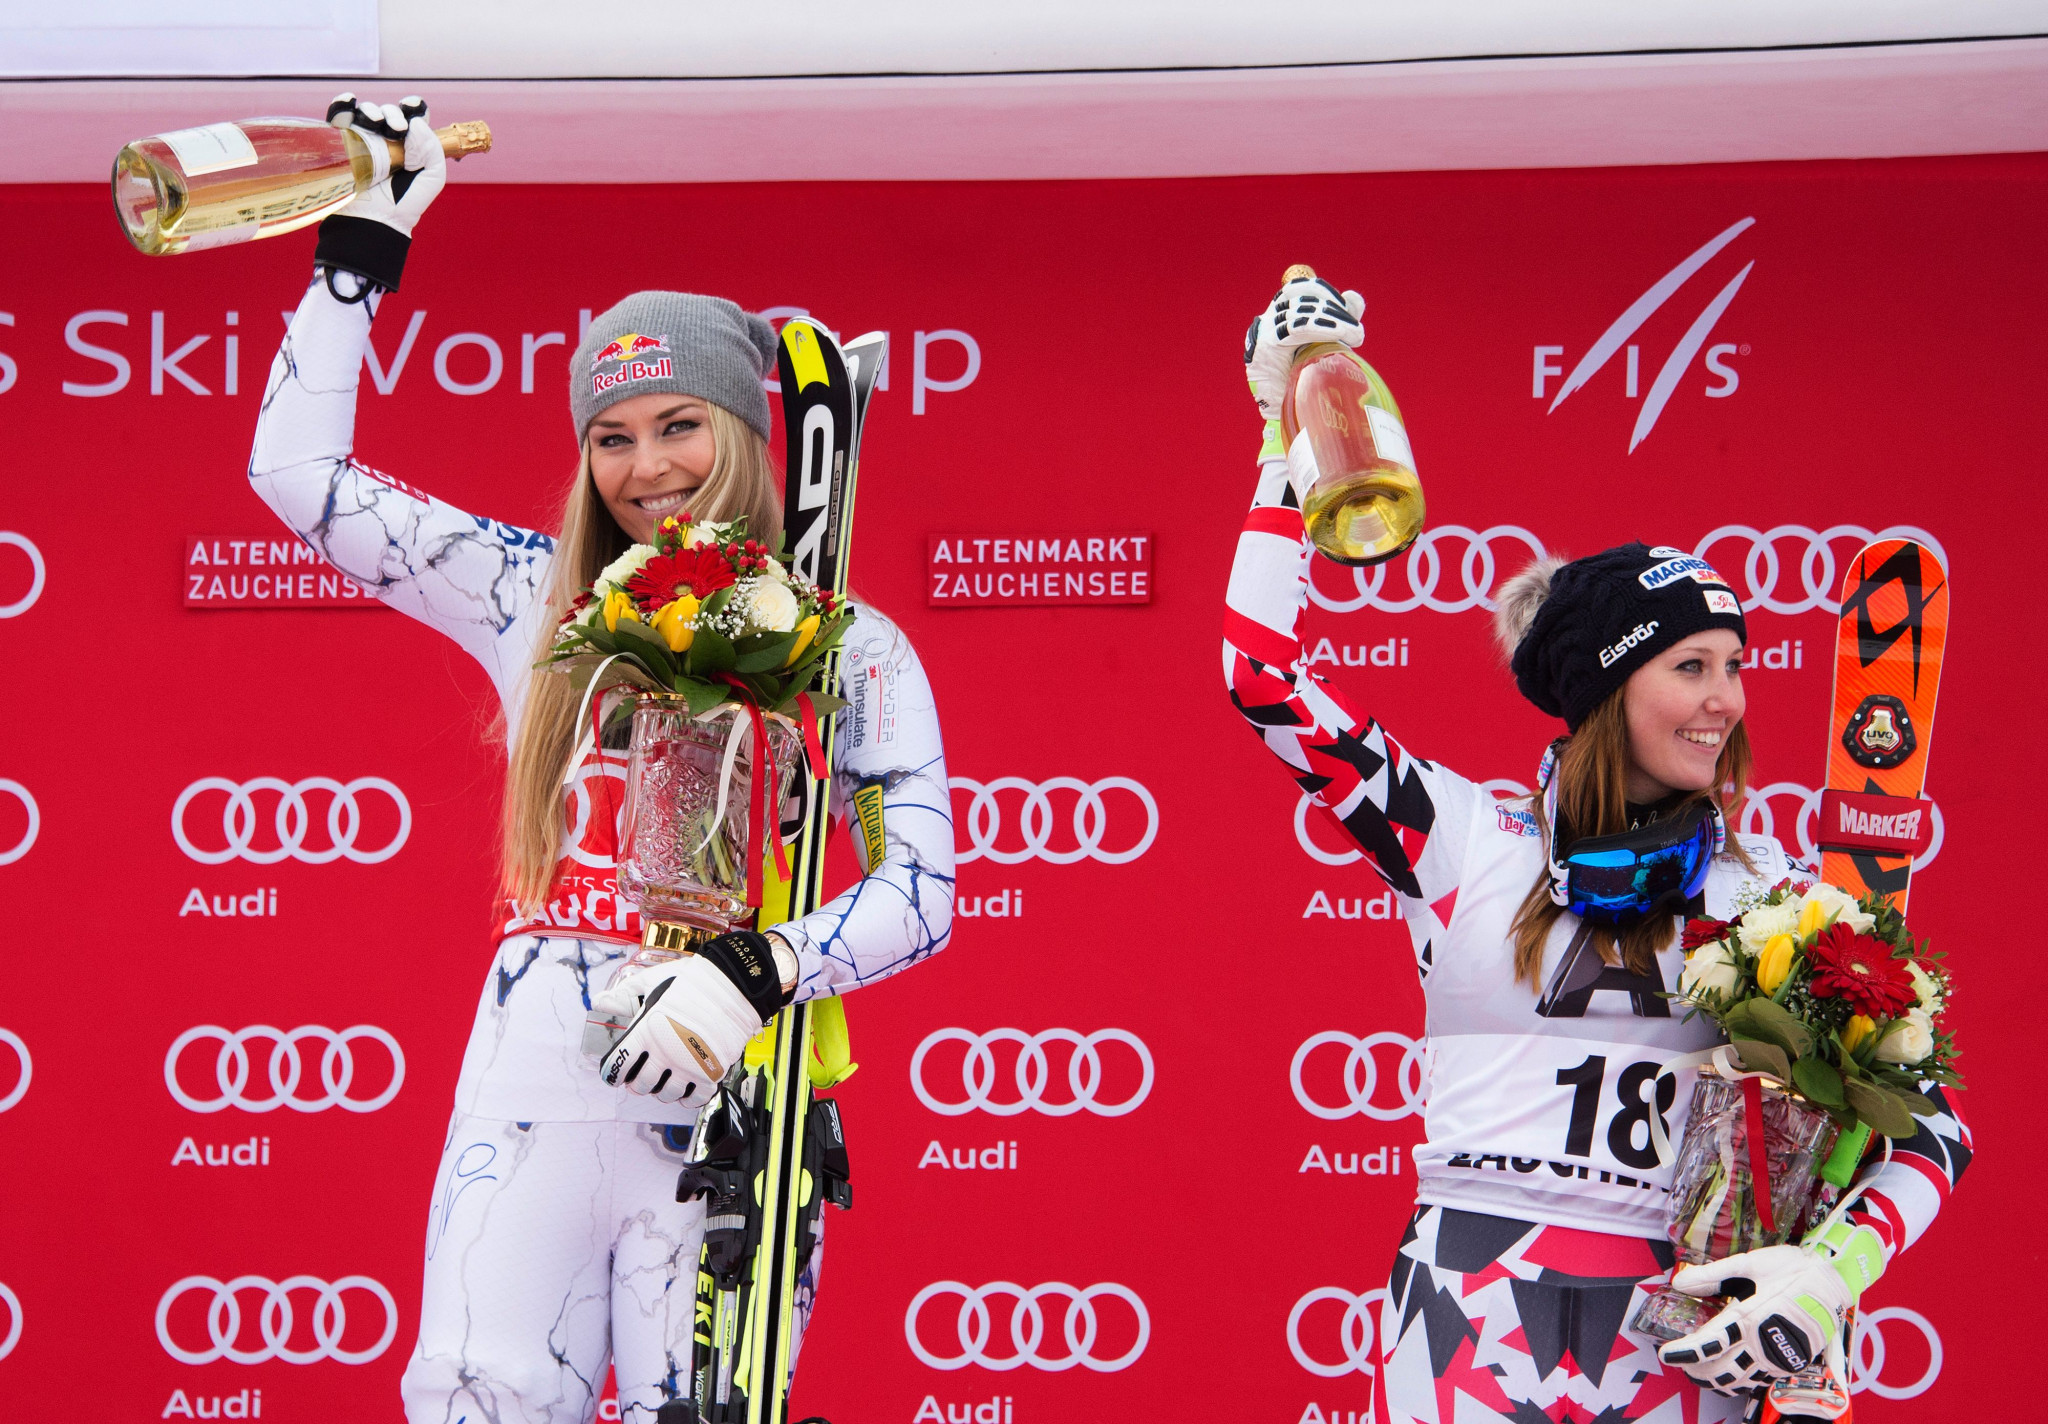 Downhill skiing icon Lindsey Vonn, left, will not compete in Lake Louise ©Getty Images